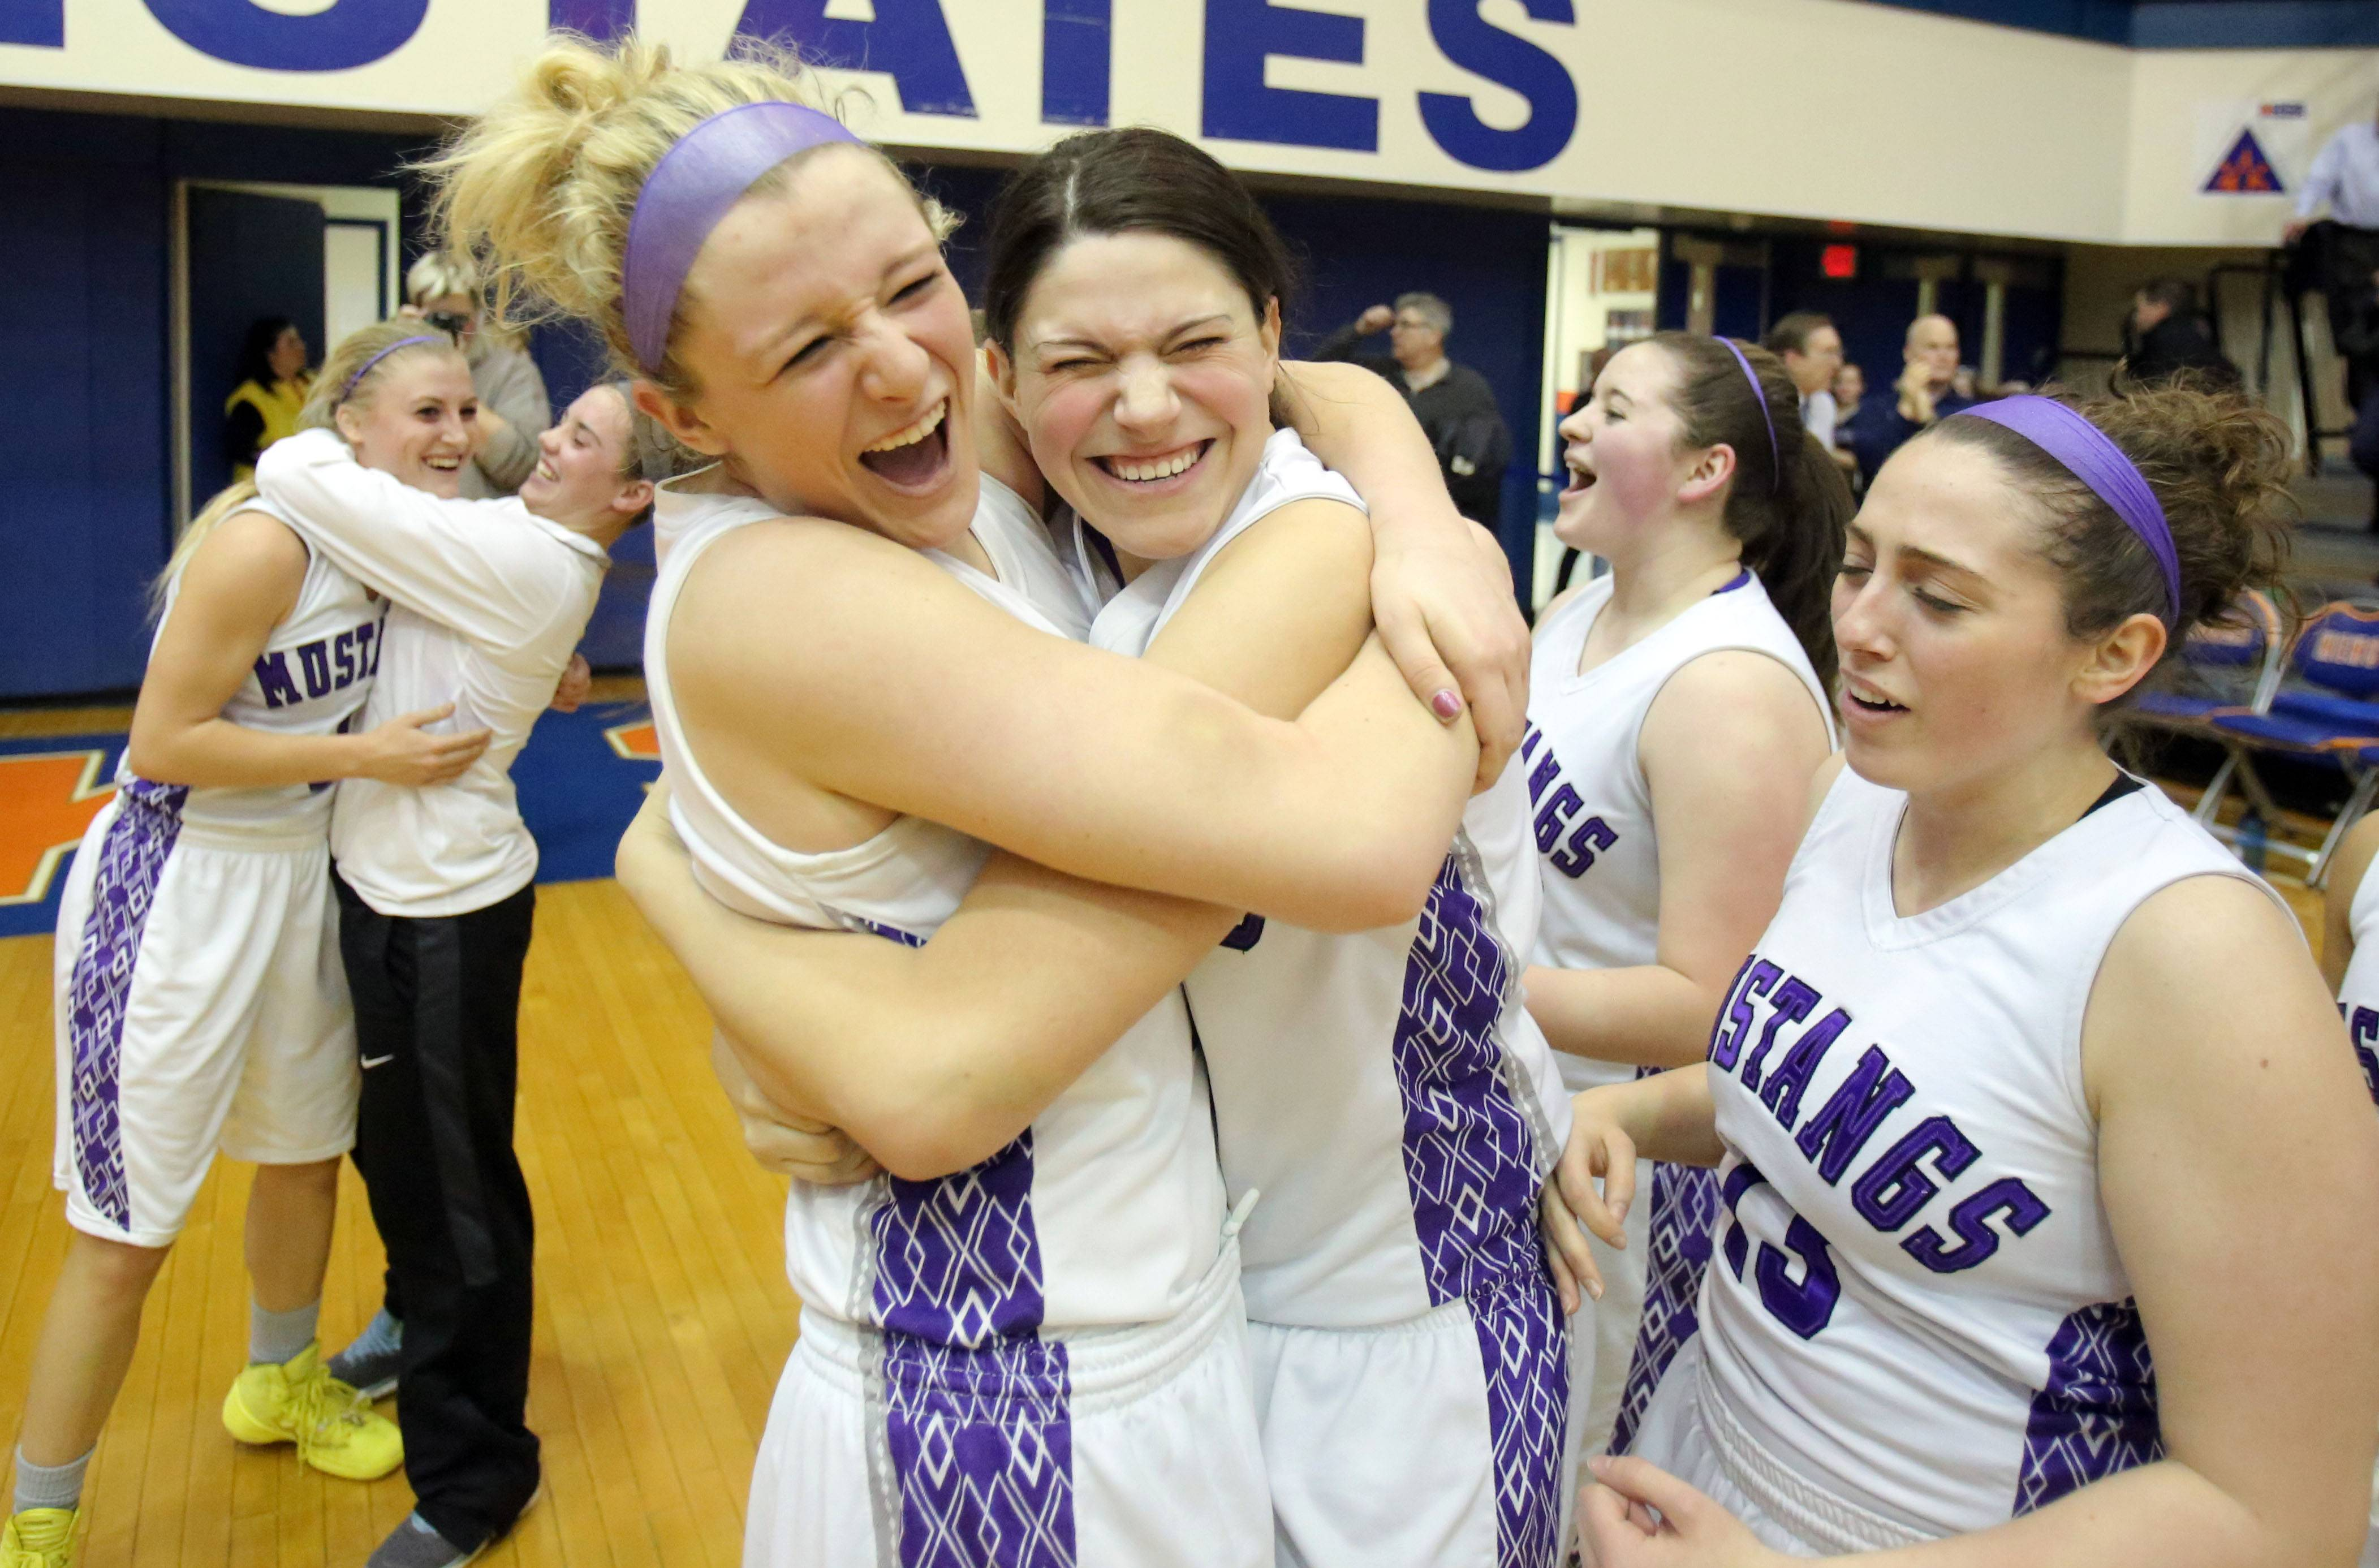 Rolling Meadows players celebrate after the win.